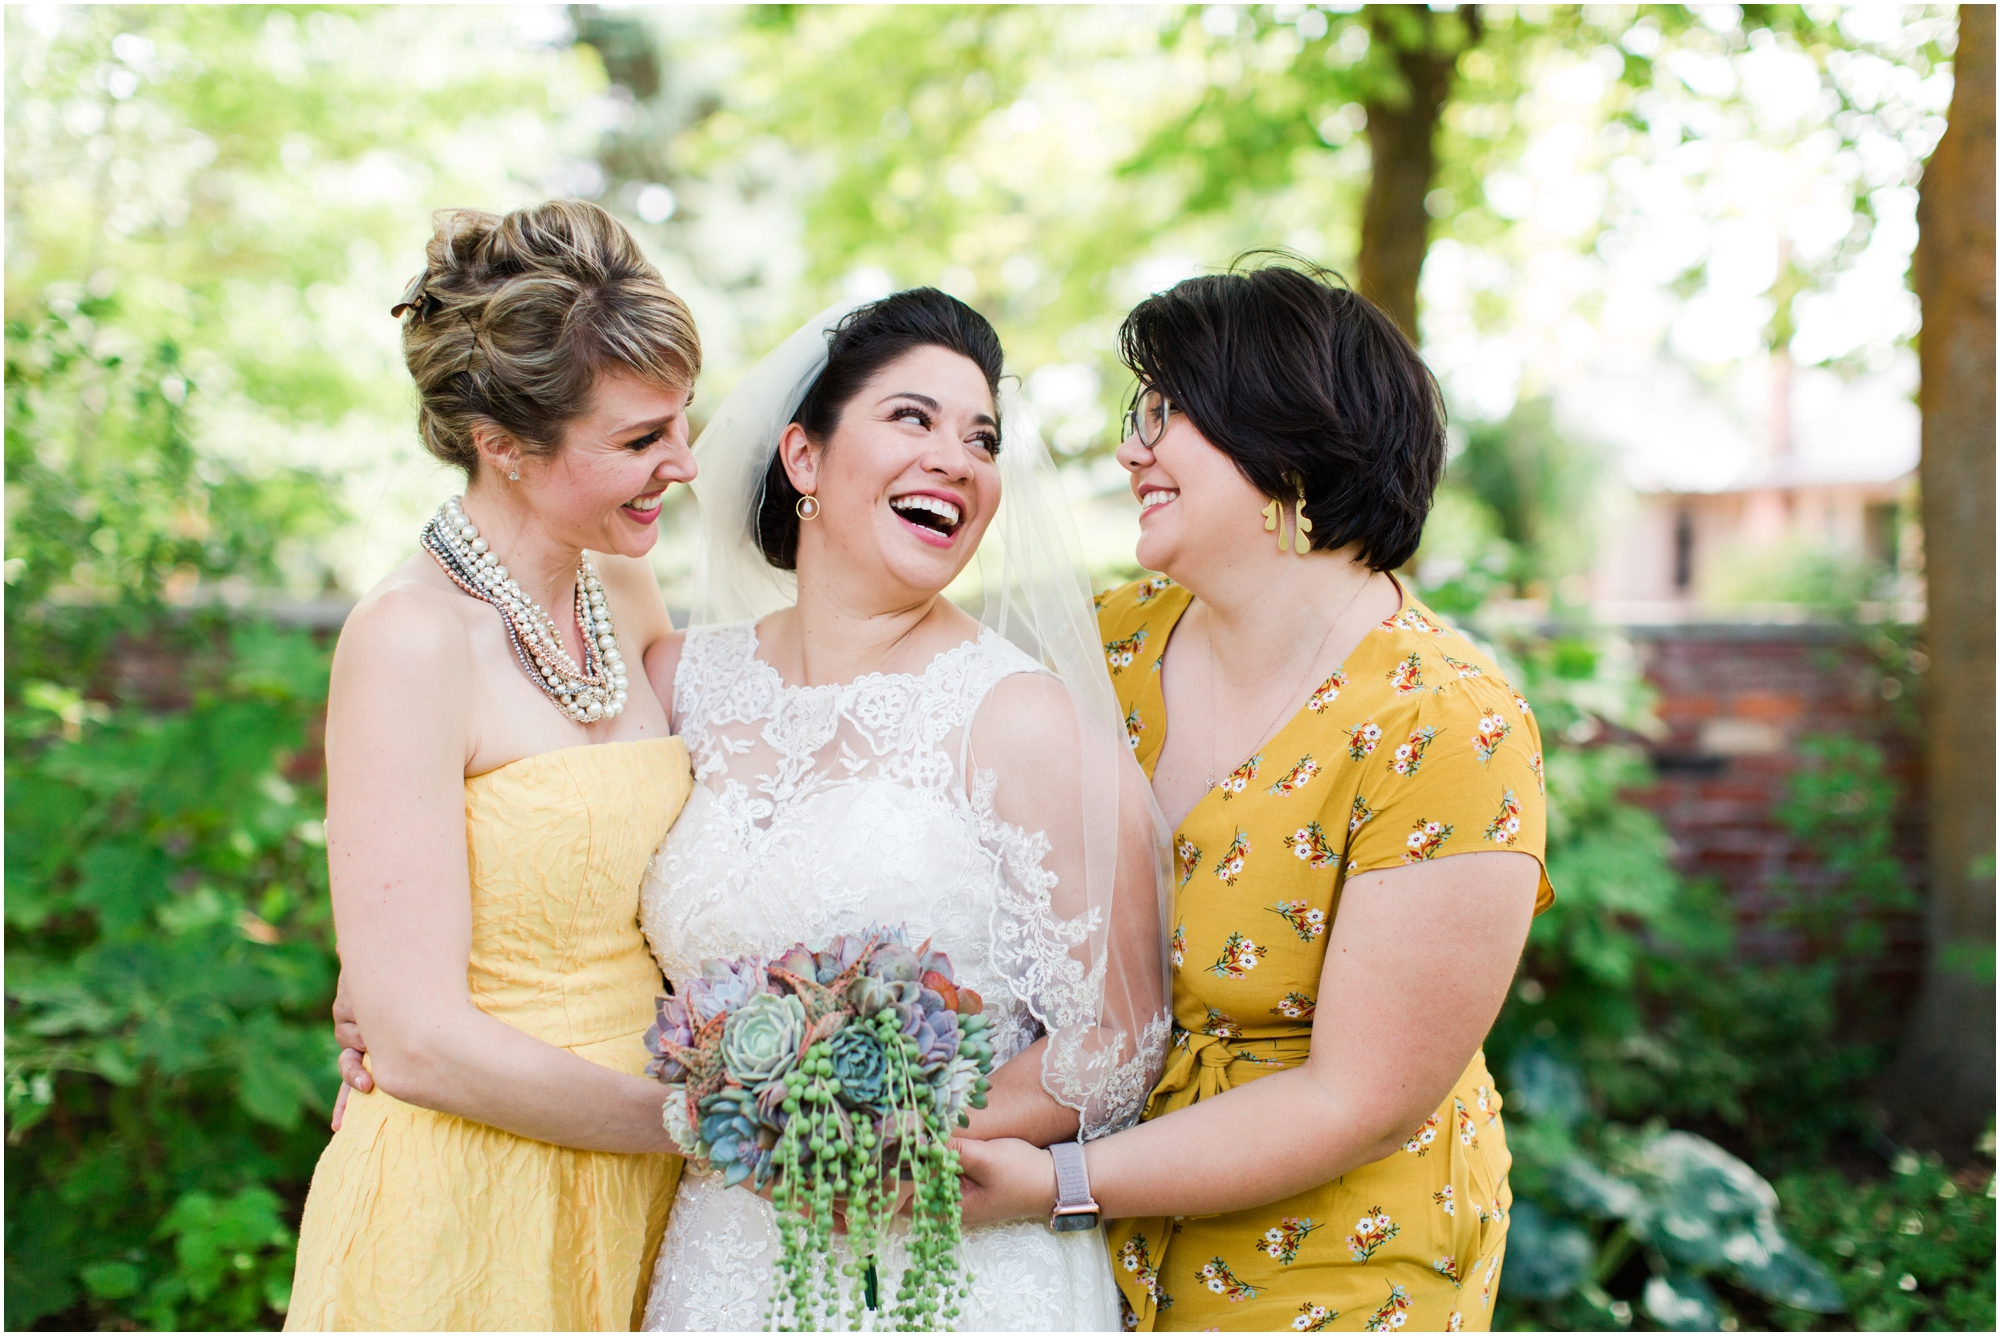 Garden wedding in Ellensburg, WA. Photos by Briana Calderon Photography based in the greater Seattle-Tacoma Area._1335.jpg